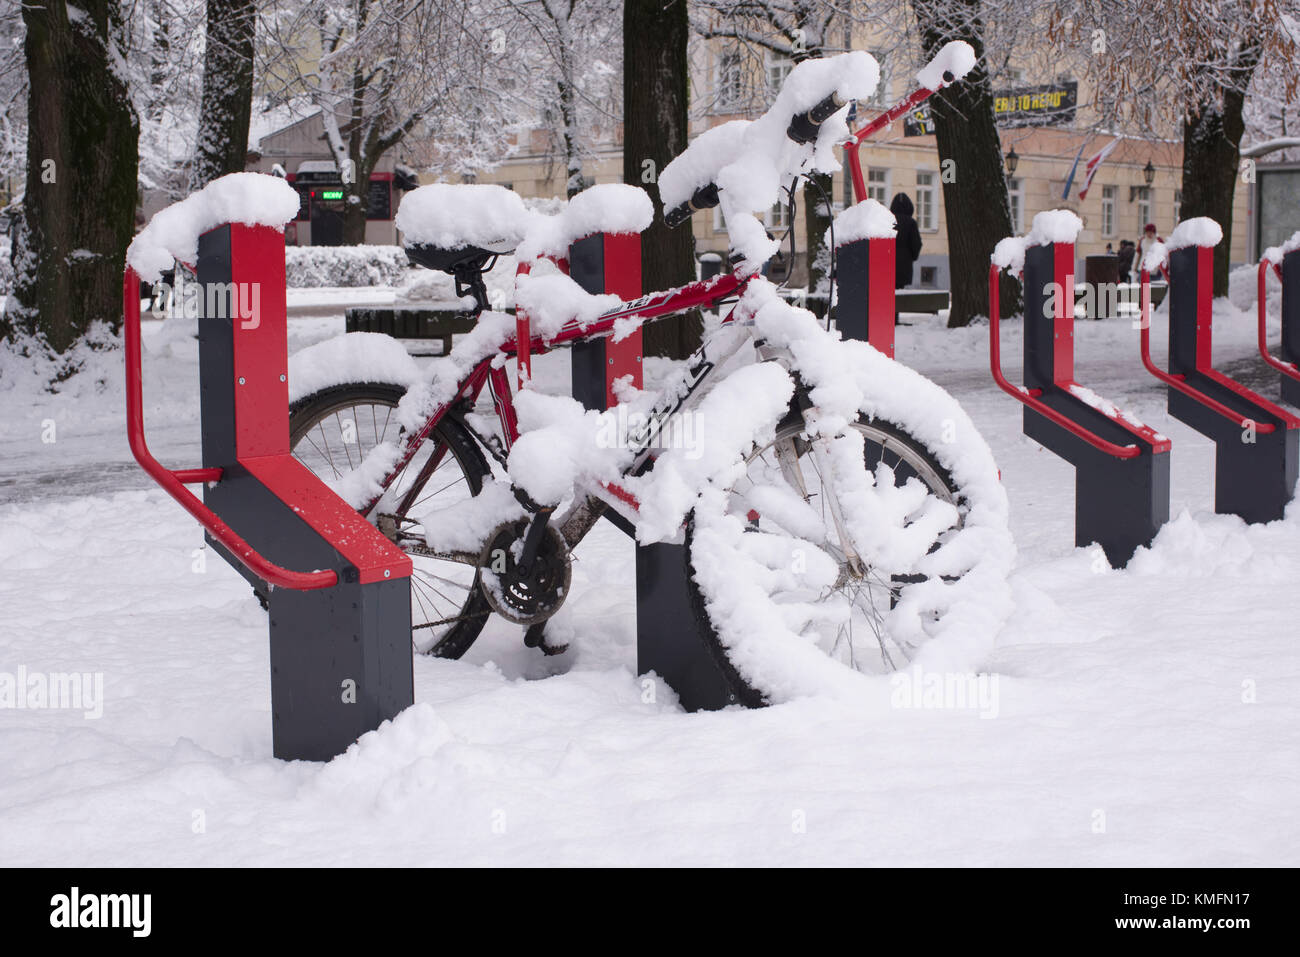 The snowy bike smart parking lot. Tartu, Estonia 6th Detsember 2017 - Stock Image